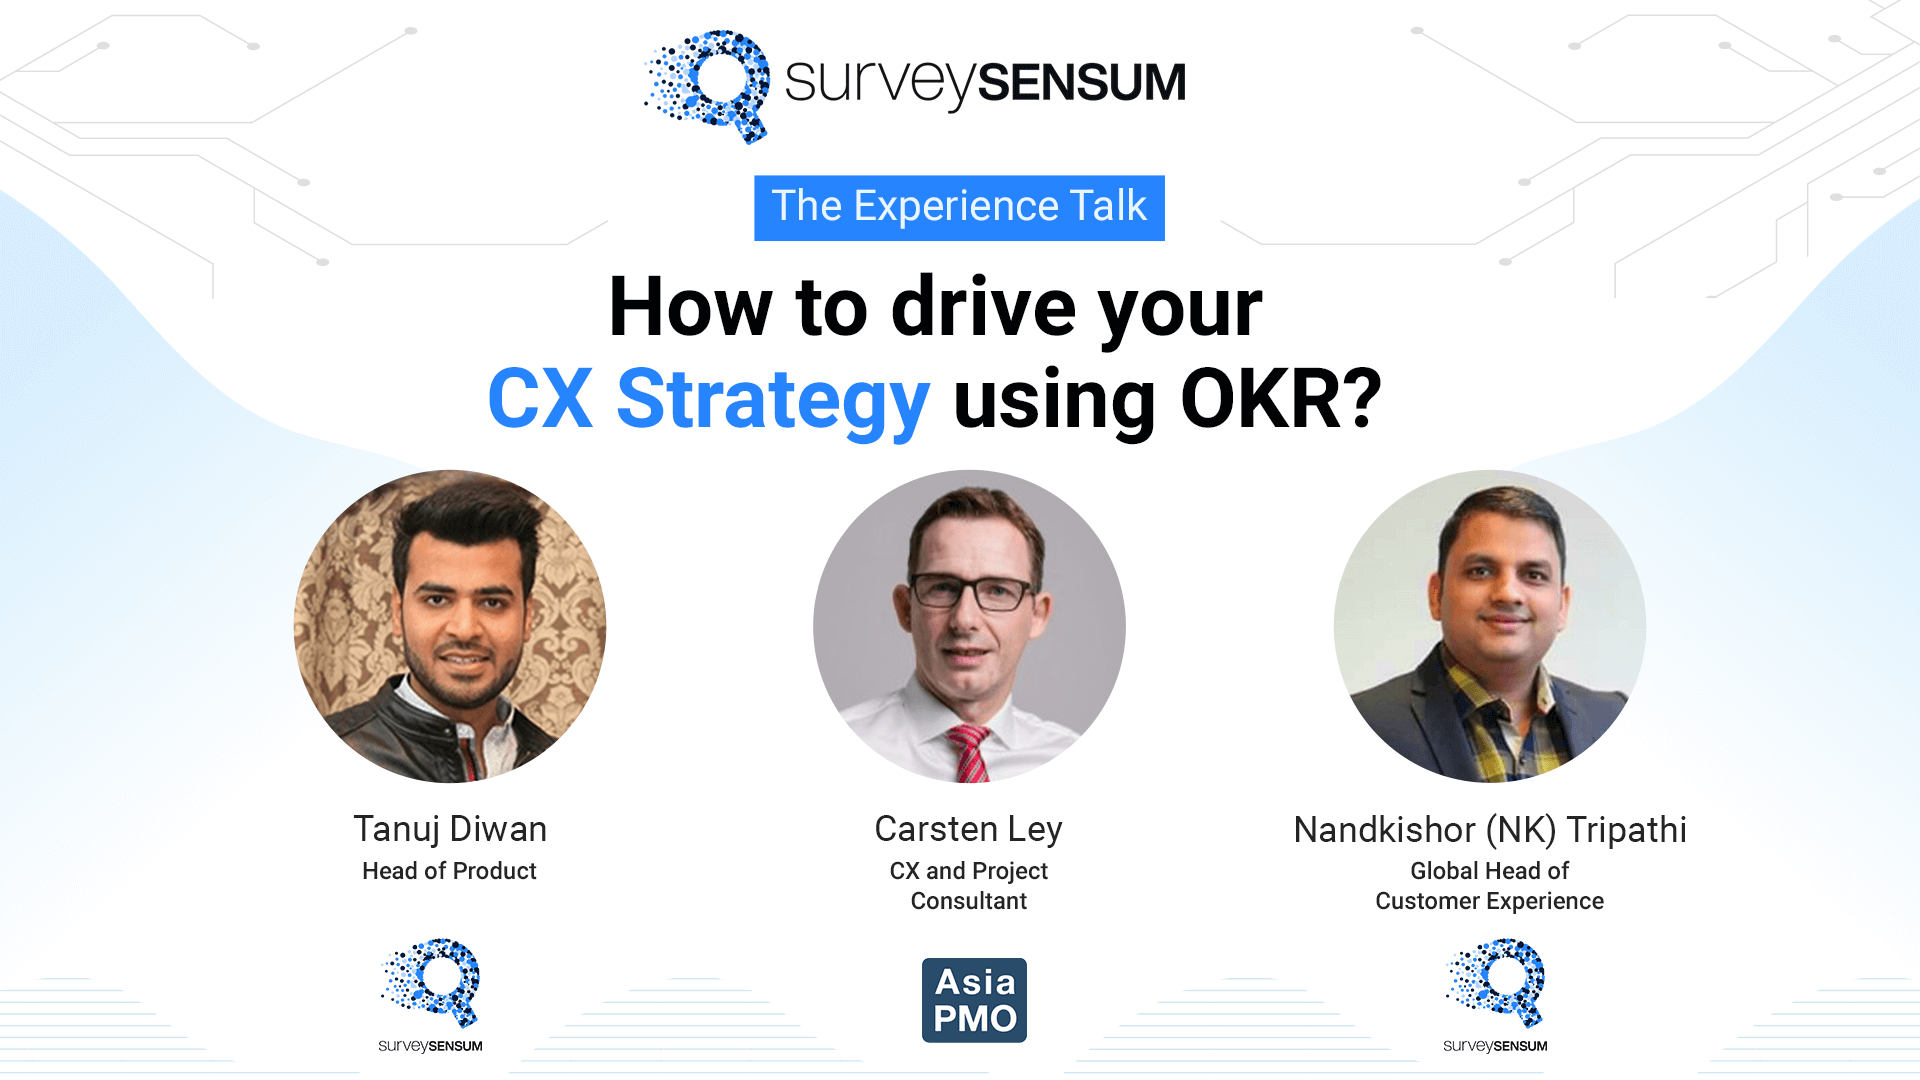 How to drive your CX Strategy using OKR?